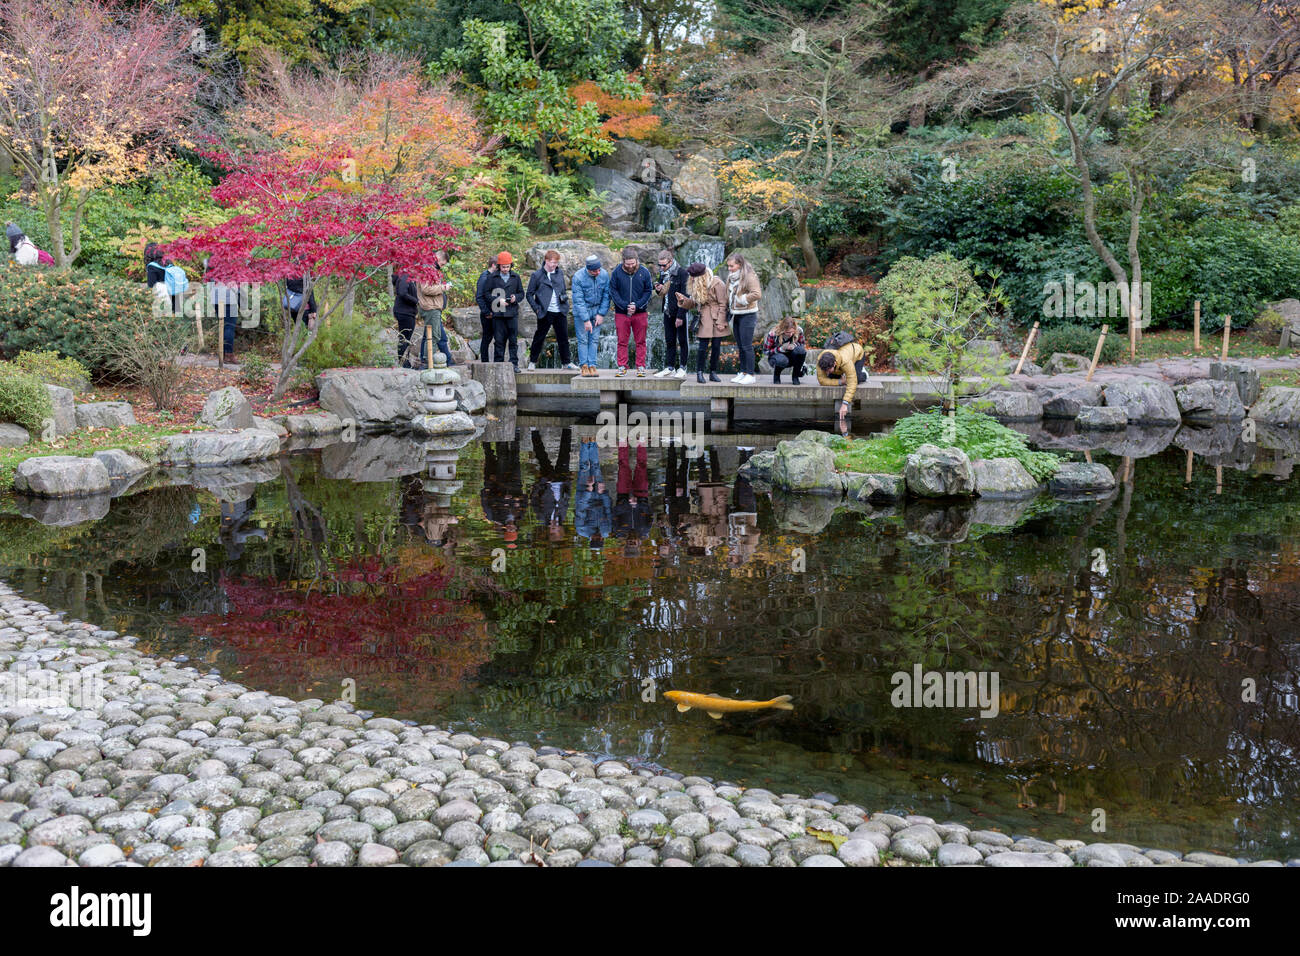 Visitors to the Kyoto Garden look into the water to see koi carp in Holland Parks' Kyoto Garden, on 17th November 2019, in London, England. The Kyoto Garden was opened in 1991. It was a gift from the city of Kyoto to commemorate the long friendship between Japan and Great Britain. Today, the Kyoto Garden is a popular part of Holland Park – but it's not the only Japanese garden in this green space. In July 2012, the Fukushima Memorial Garden was officially opened. It commemorates the gratitude of the Japanese people to the British people for their support following the natural disasters that st Stock Photo